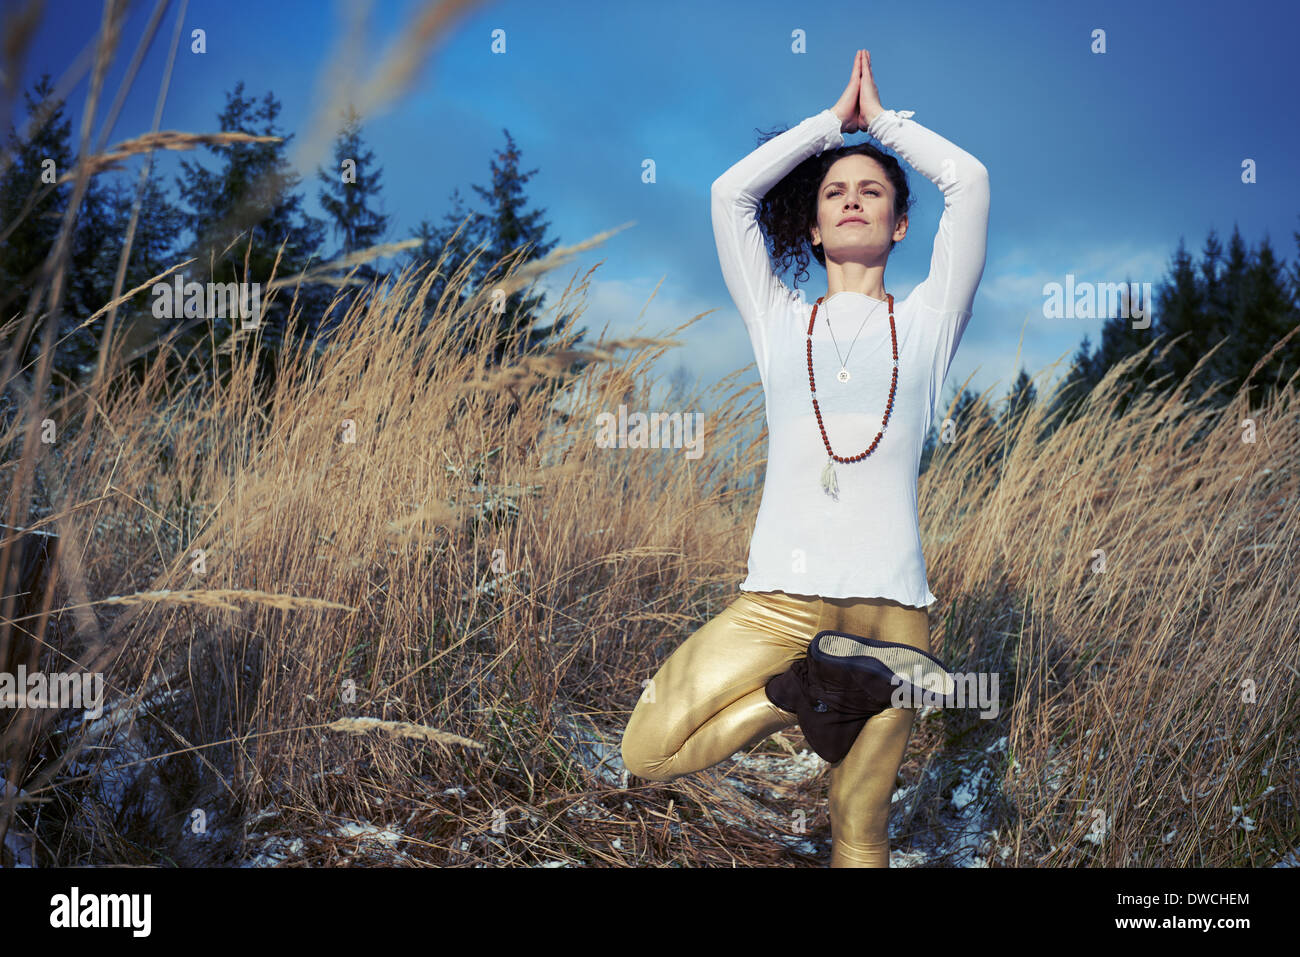 Mid adult woman doing standing tree yoga pose in forest Stock Photo